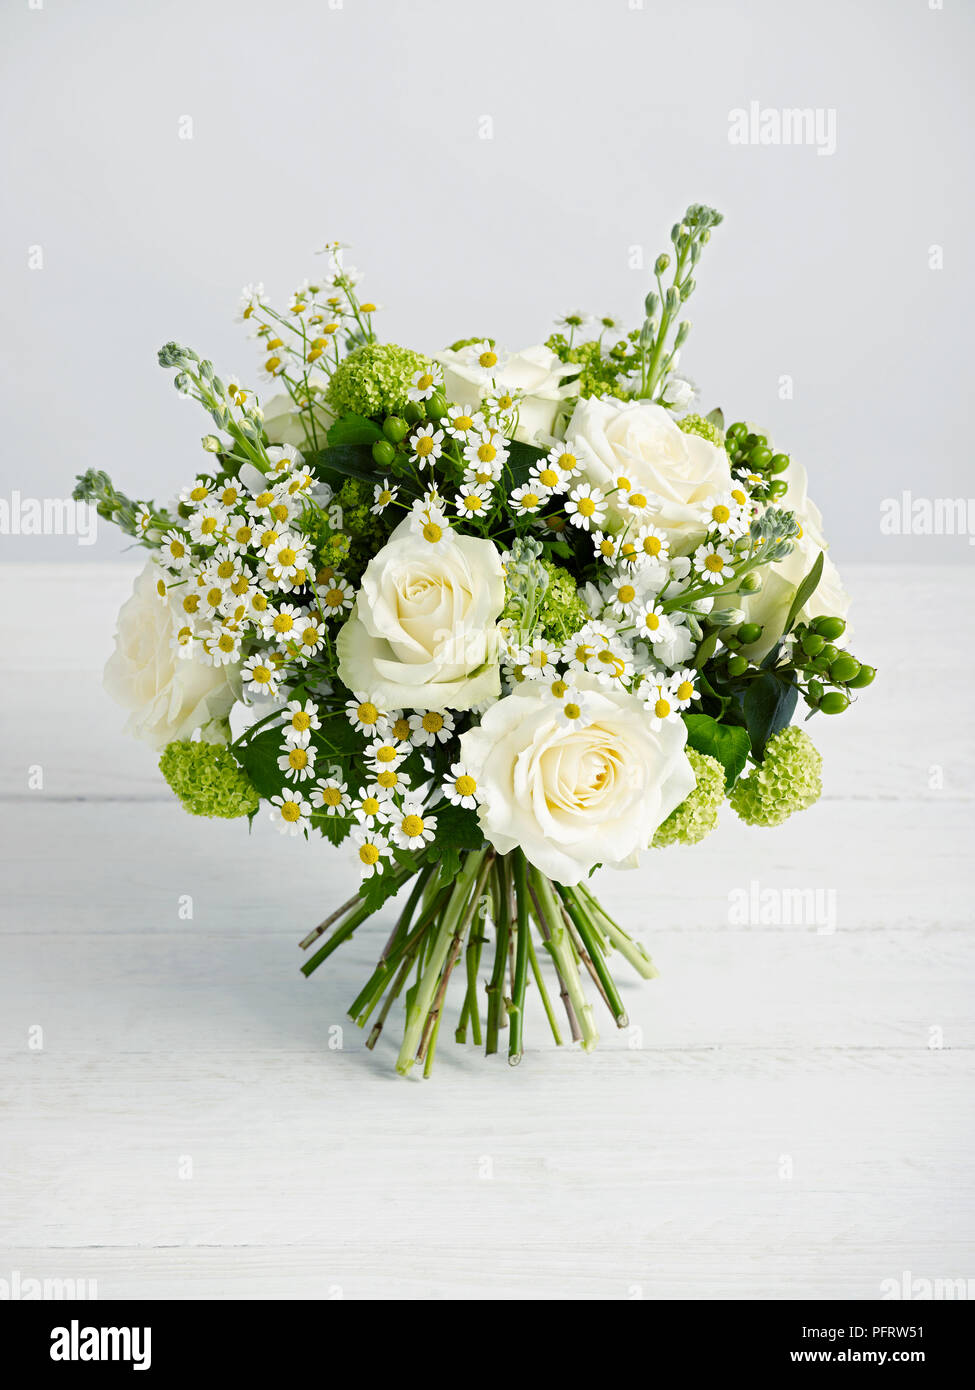 White And Green Hand Tie Bouquet Consisting Of Green Hypericum